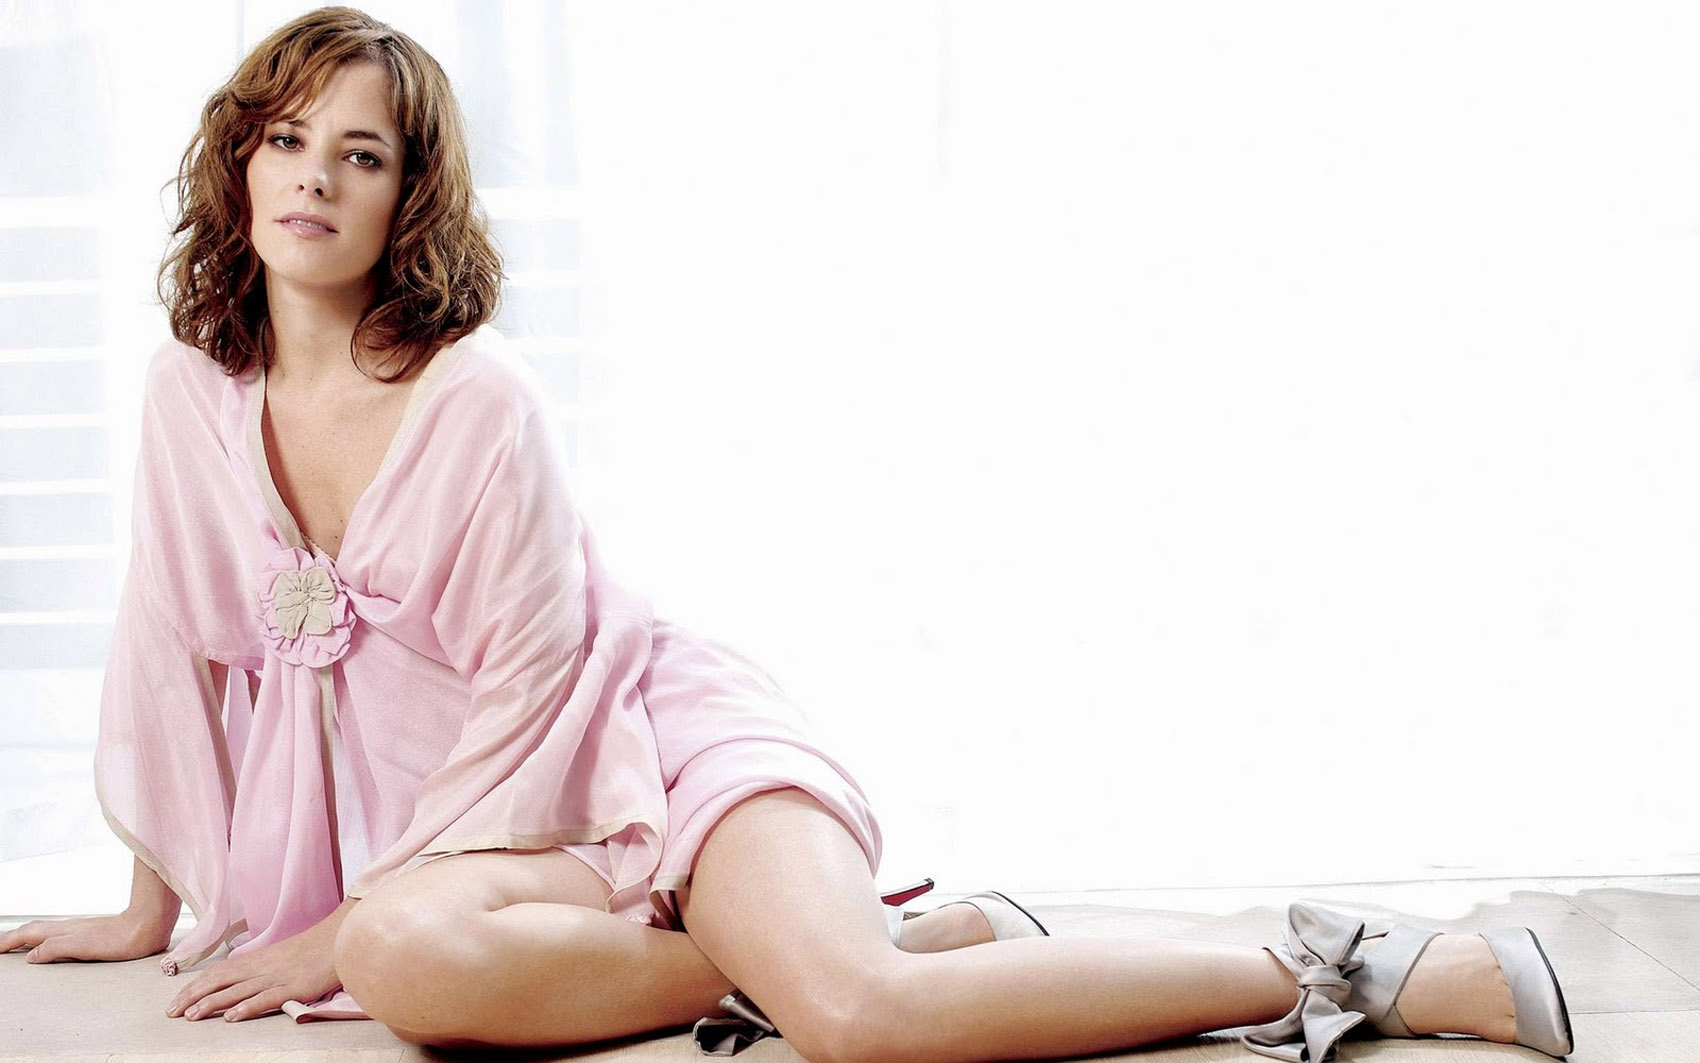 Parker Posey famous actress 32830